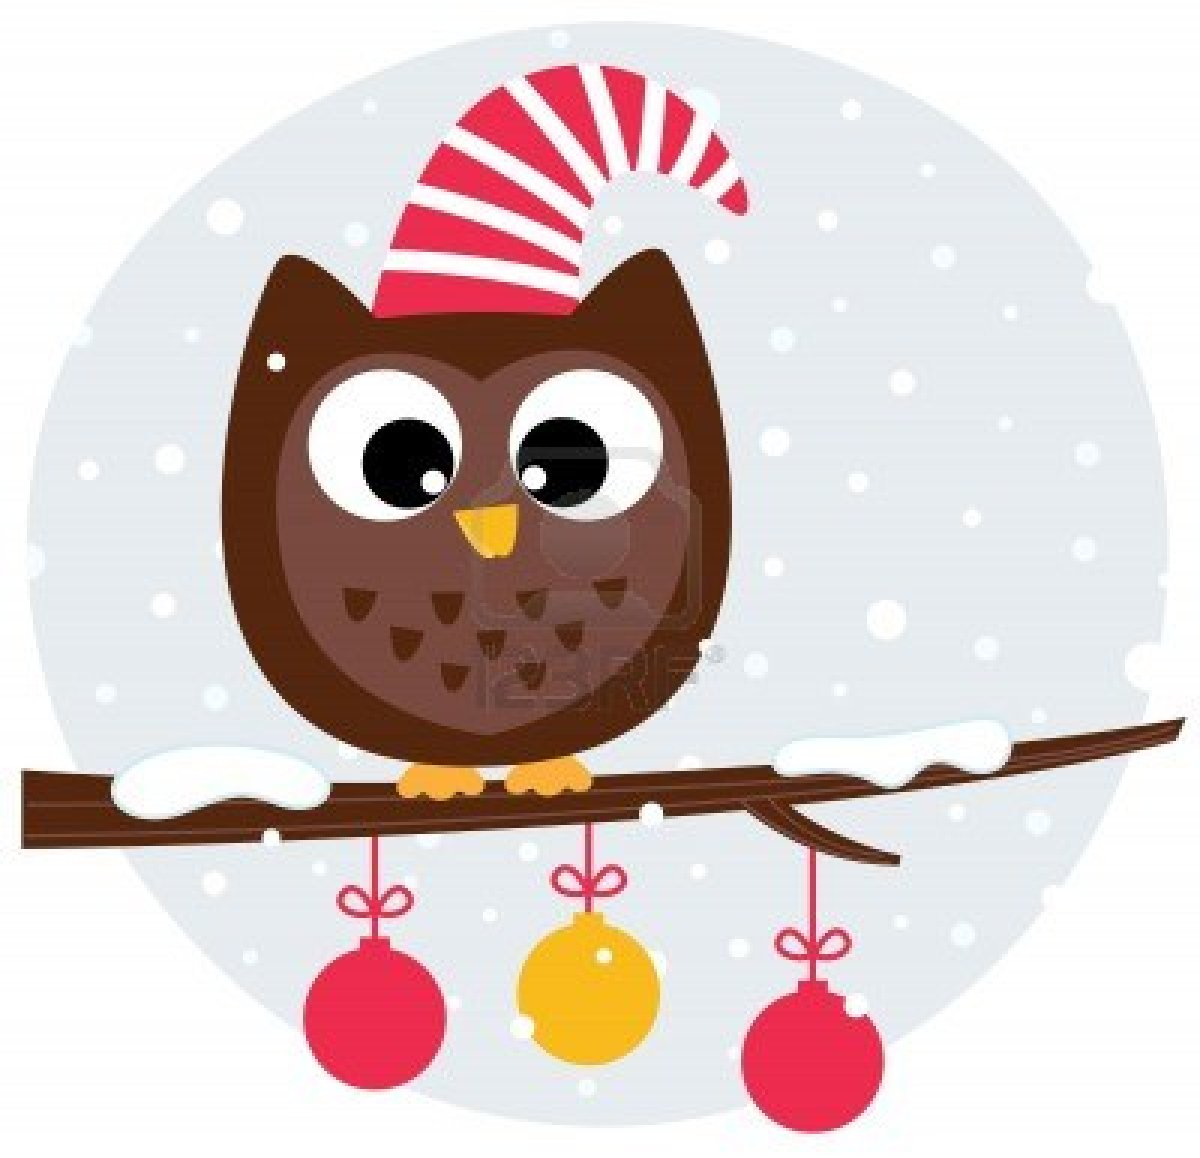 Owl clipart merry christmas OwlsChristmas Photographer: (photos on